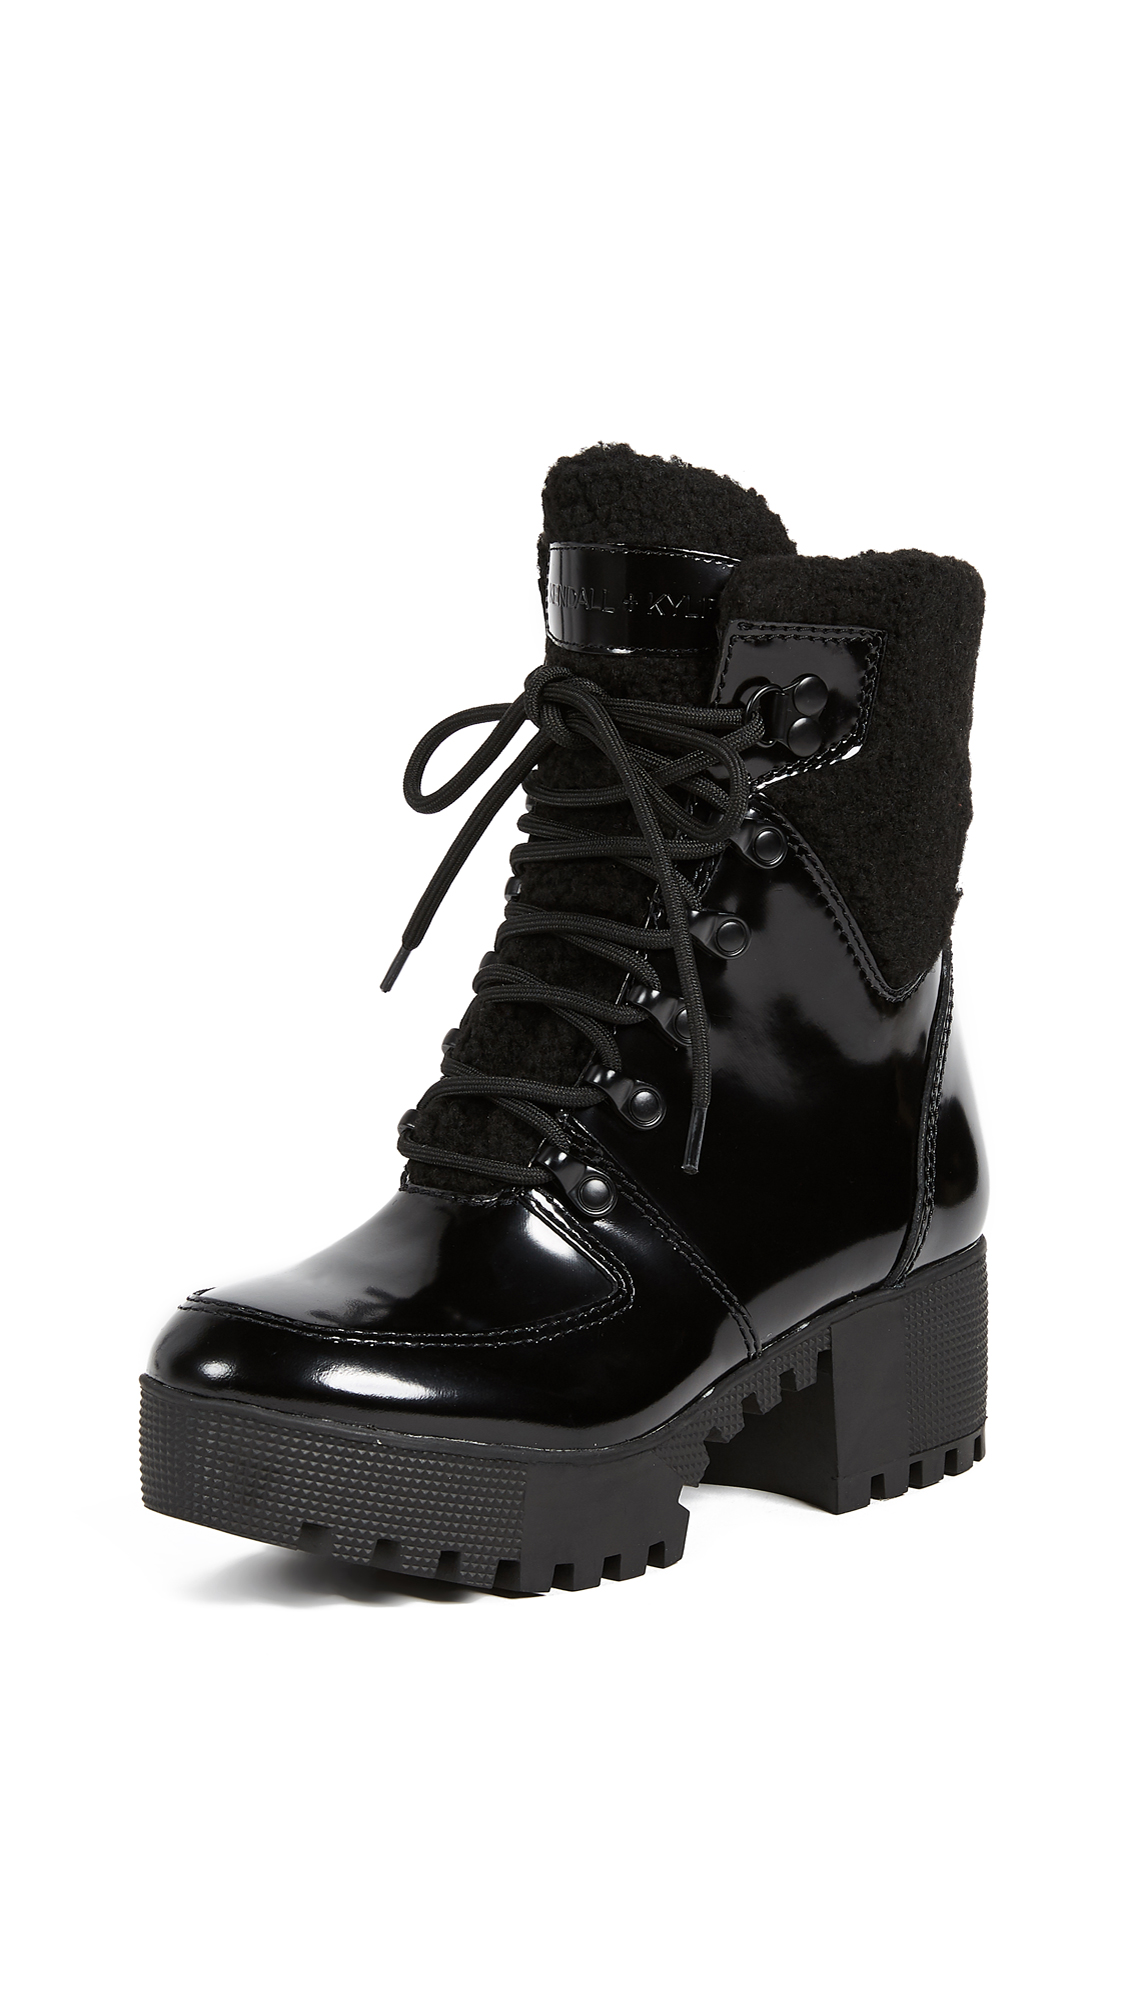 KENDALL + KYLIE Paxton Lace Up Boots - Black